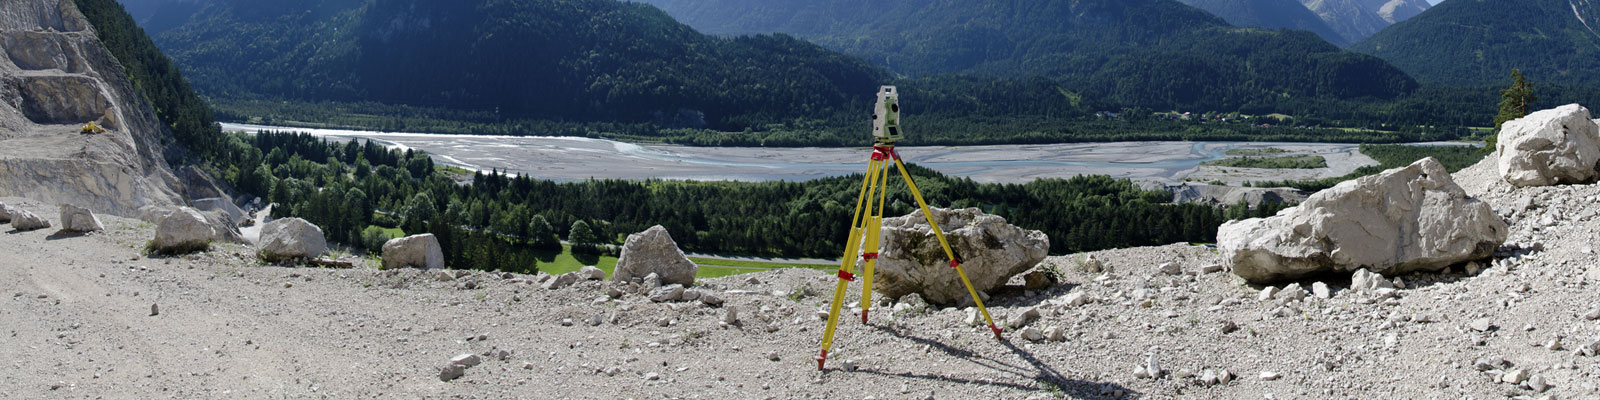 underground surveying mapping